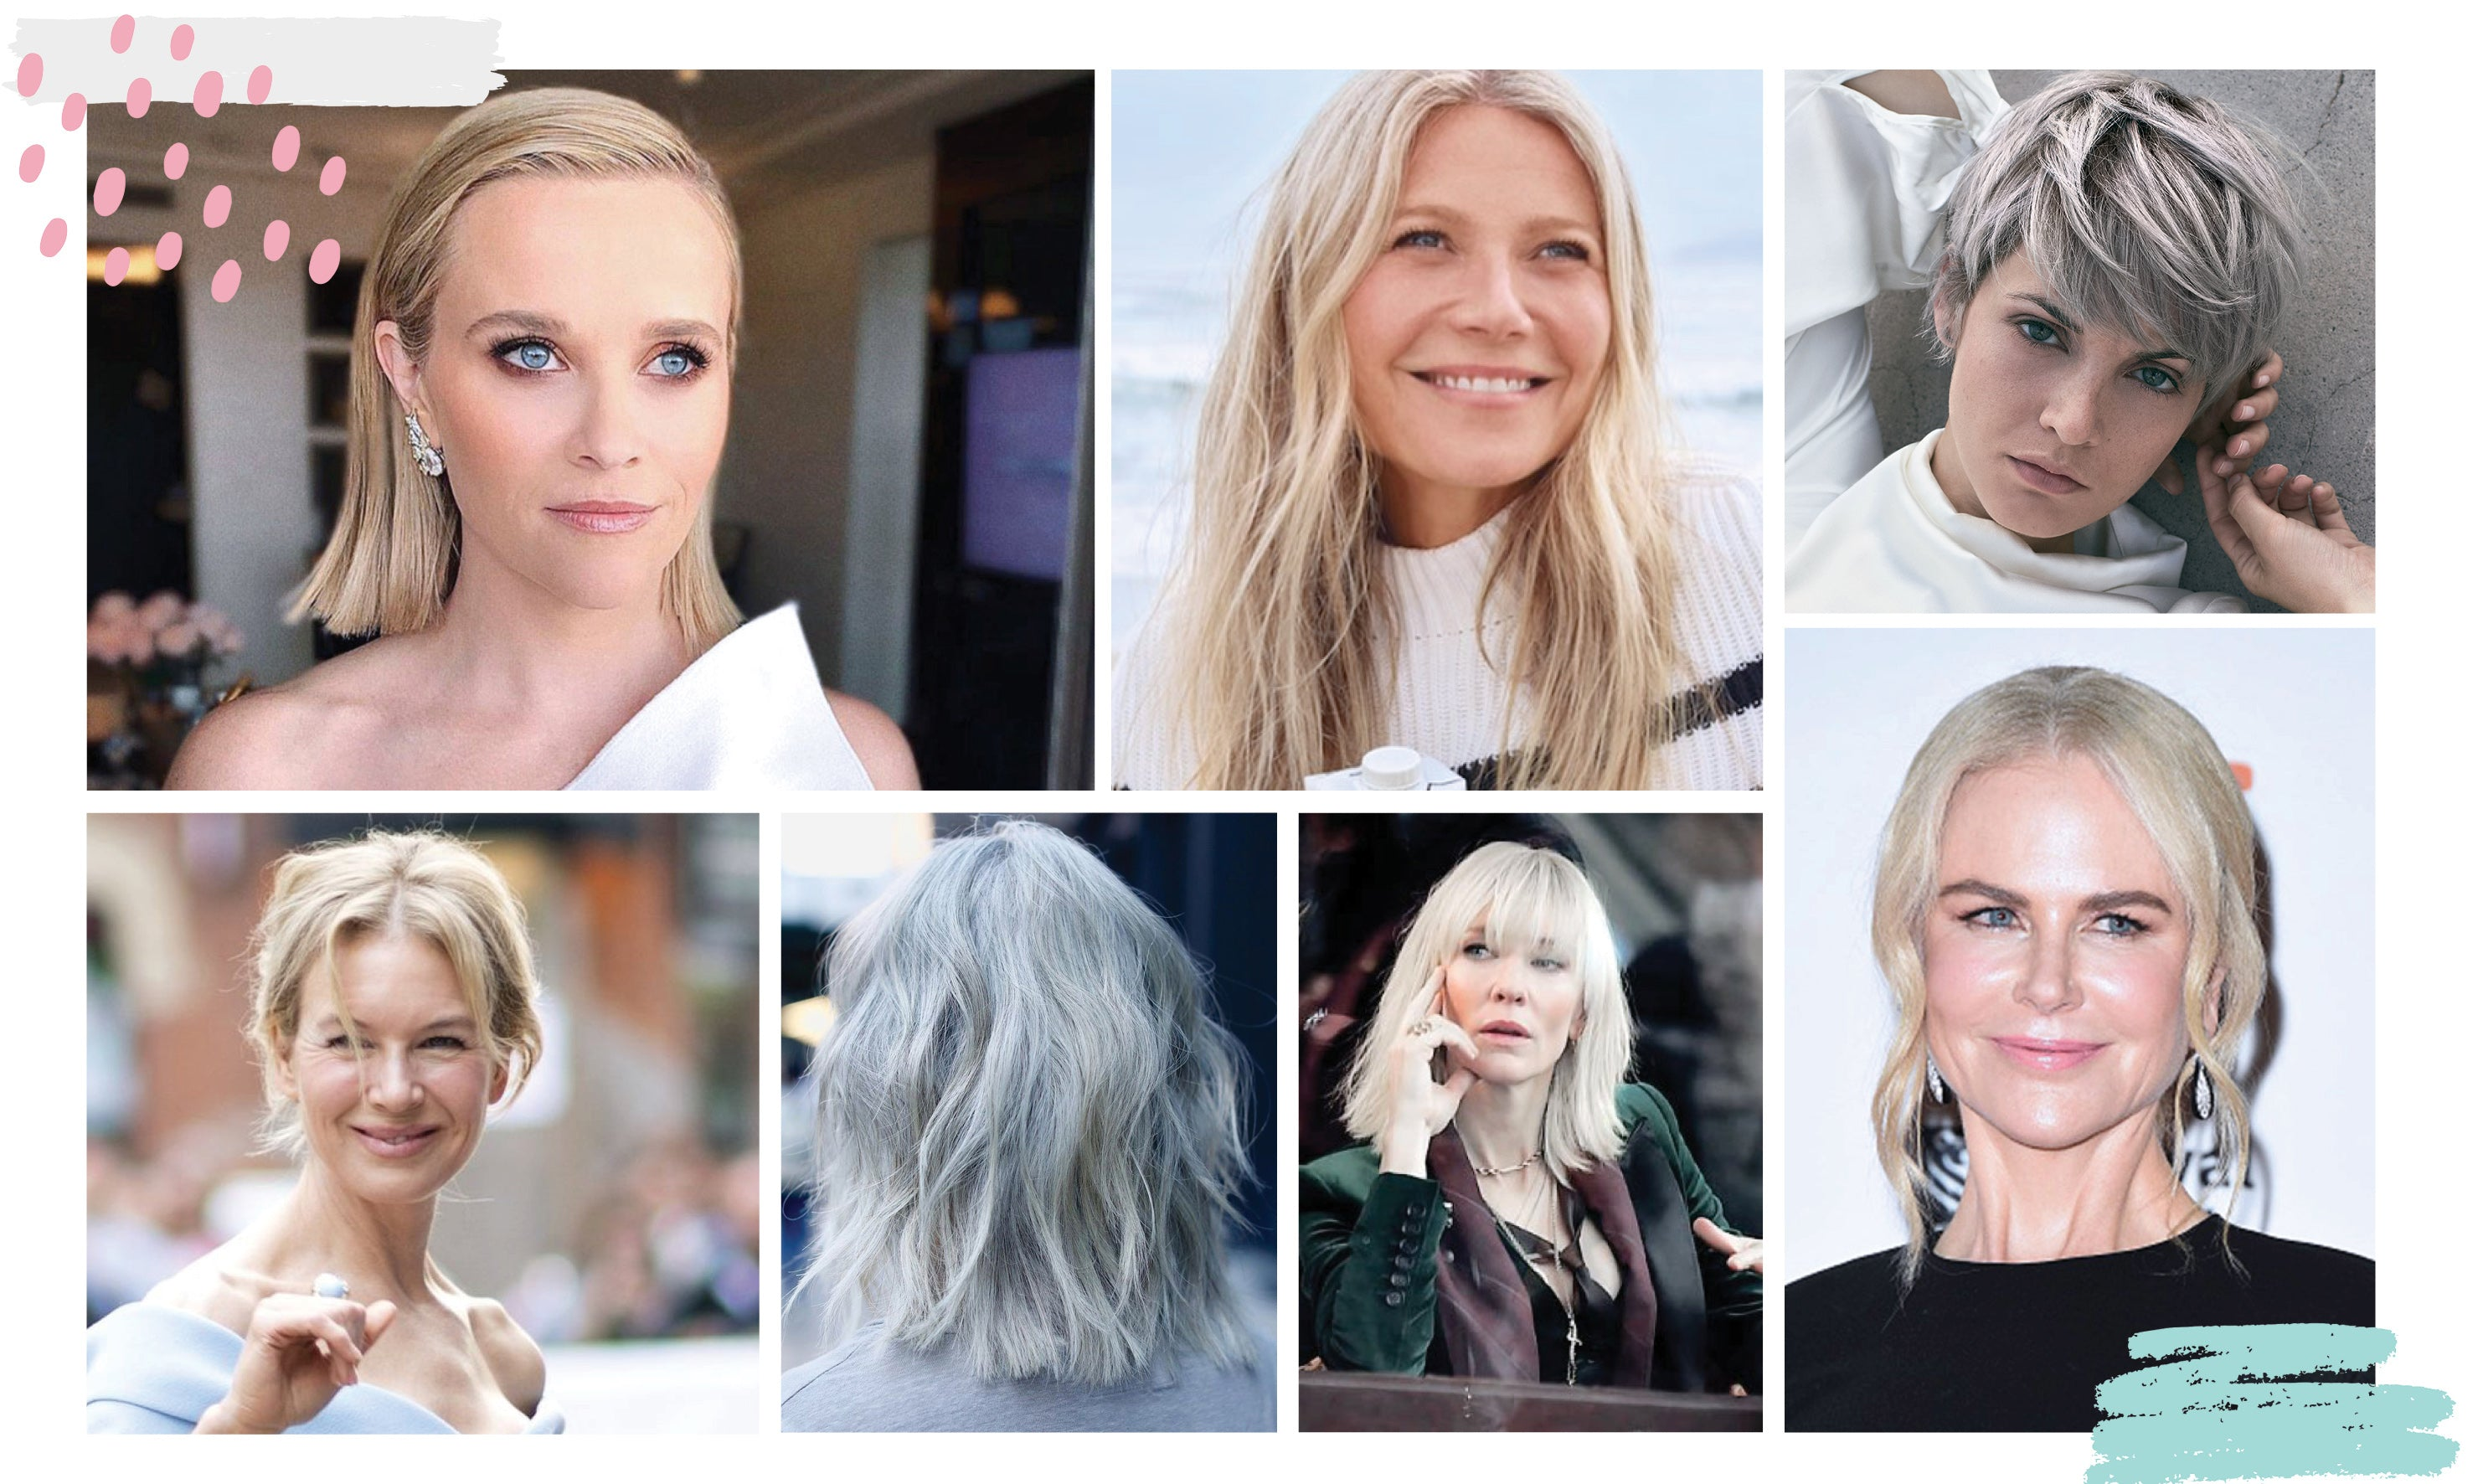 Many celebs in their 50's have embraced this grey-blonde trend, including Nicole Kidman, Reese Witherspoon, Cate Blanchett, Renee Zellweger, Ellen DeGeneres, and Gweneth Paltrow!